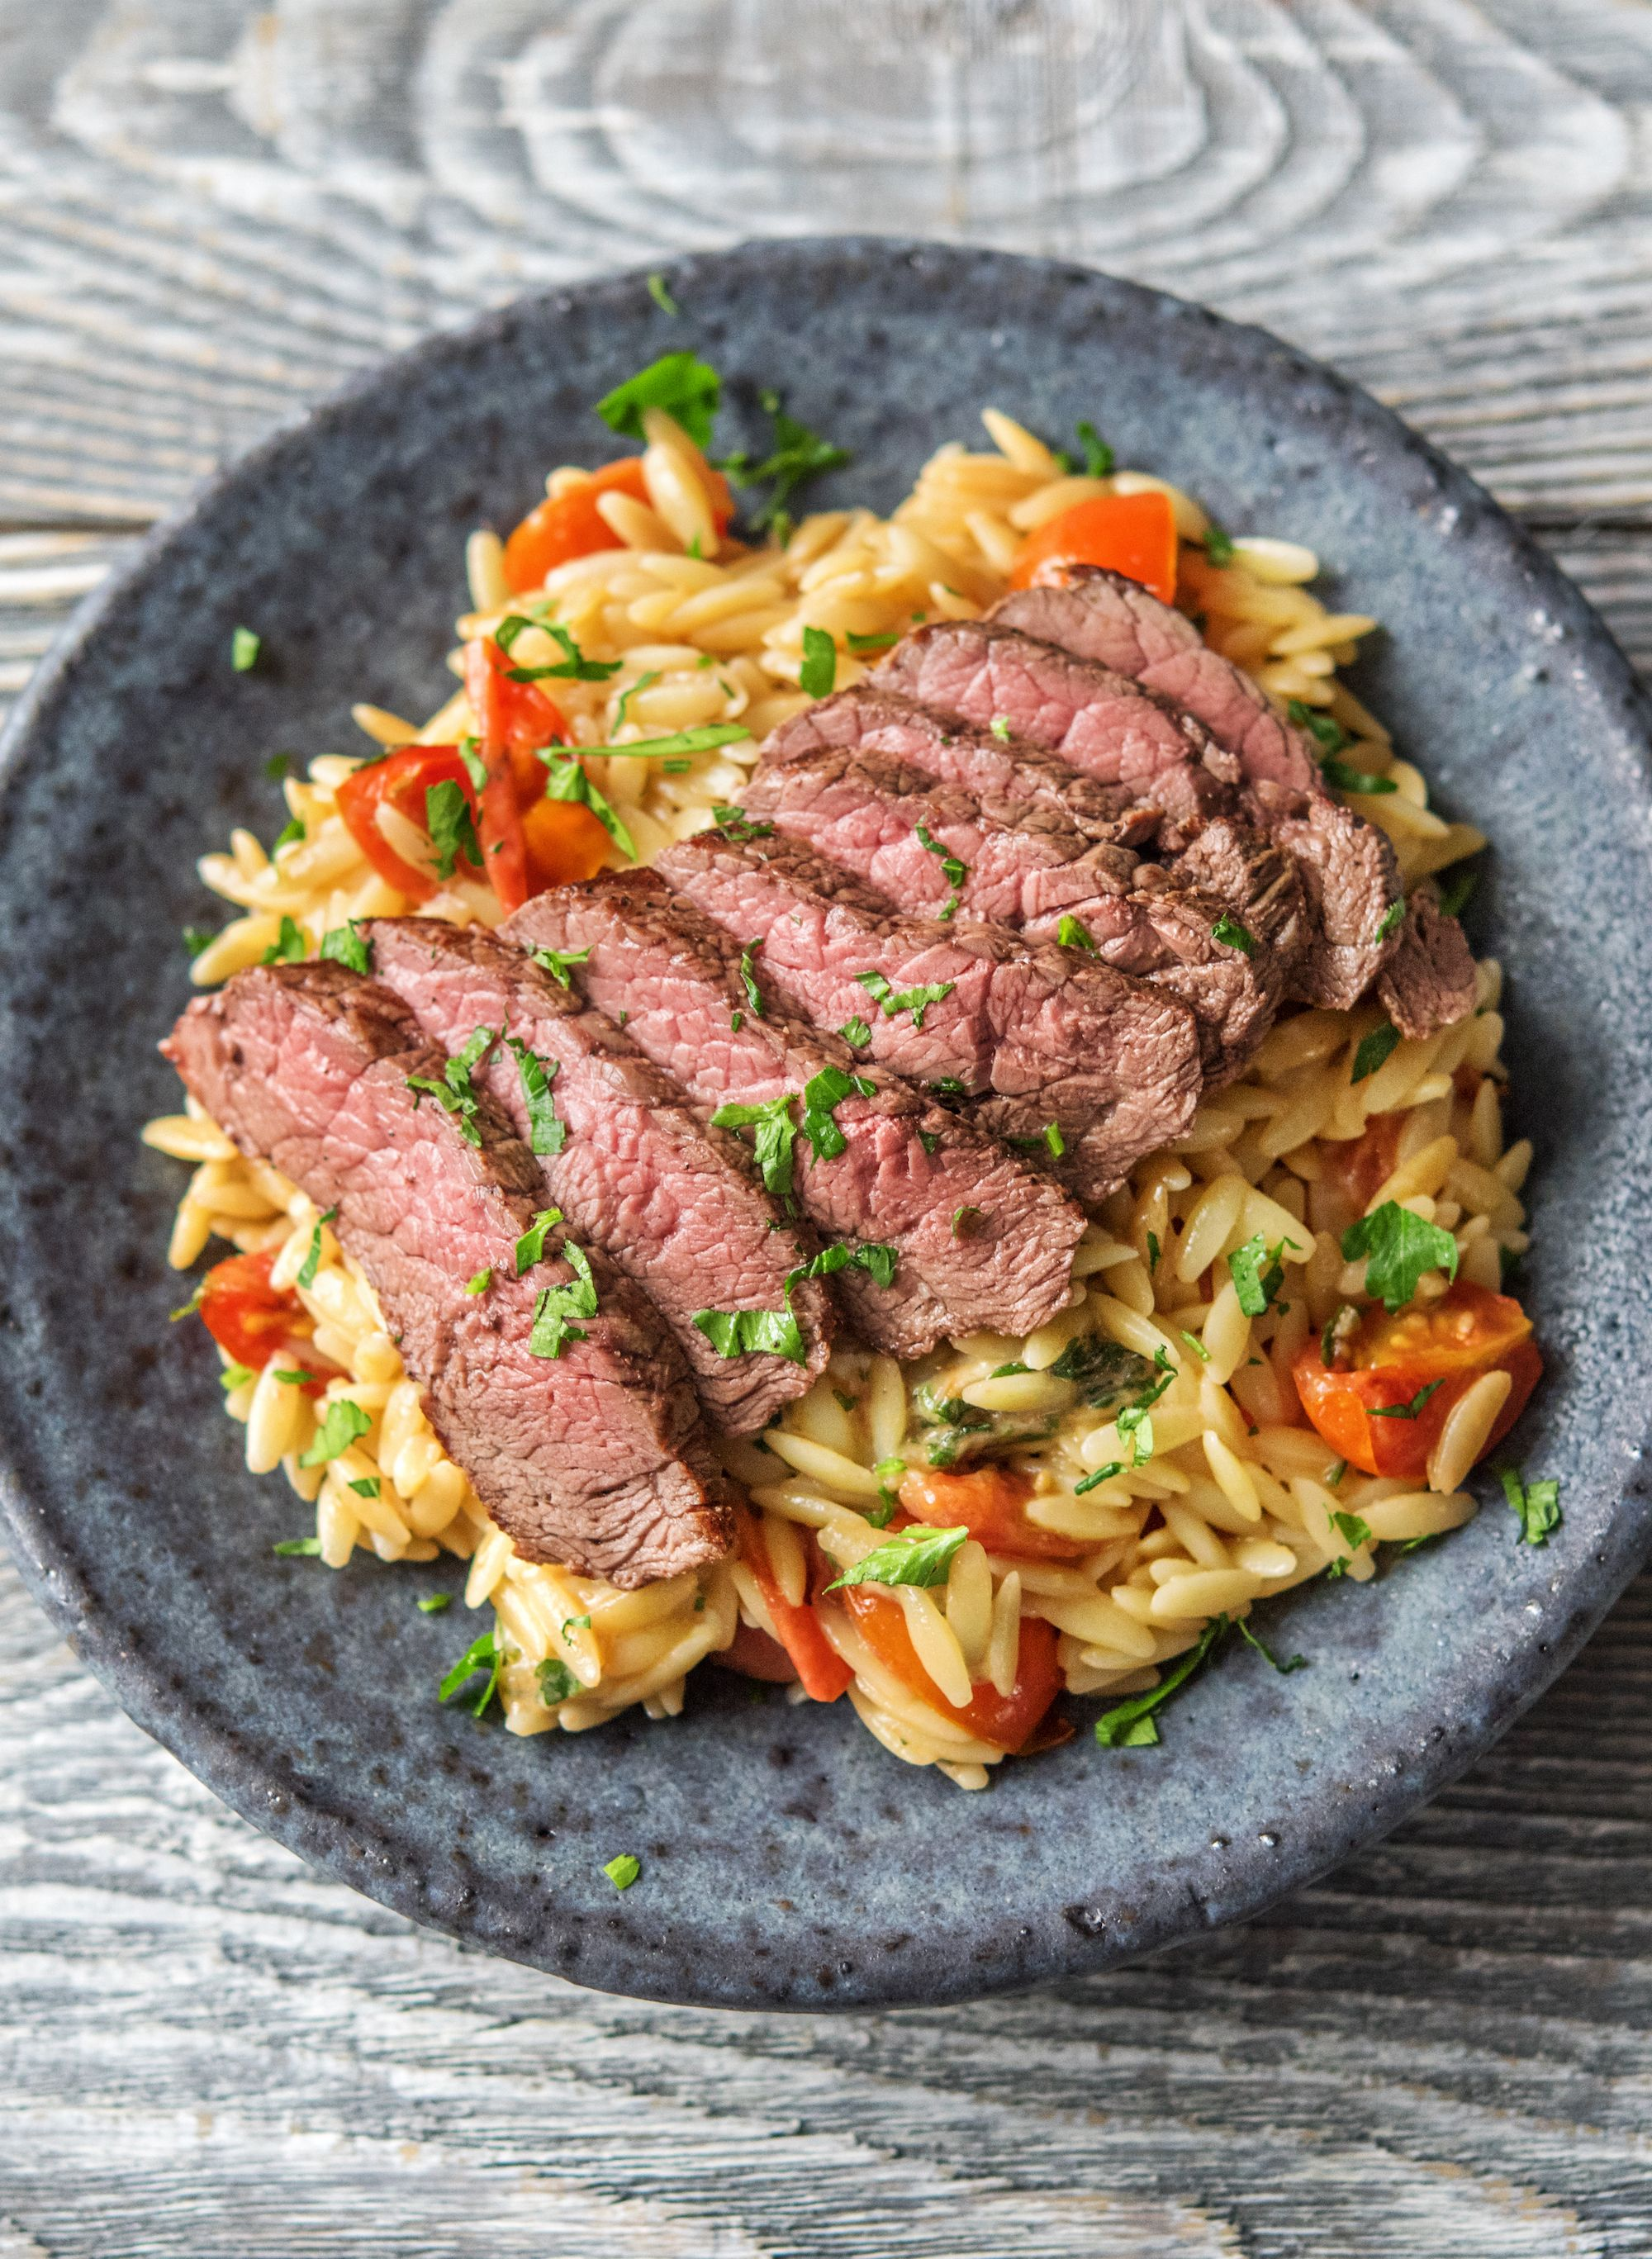 Simple Pasta Salad With Tomatoes Mozzarella And Sired Steak More Wholesome Recipes On Hellofresh Com Hello Fresh Recipes Sirloin Steak Recipes Fresh Food